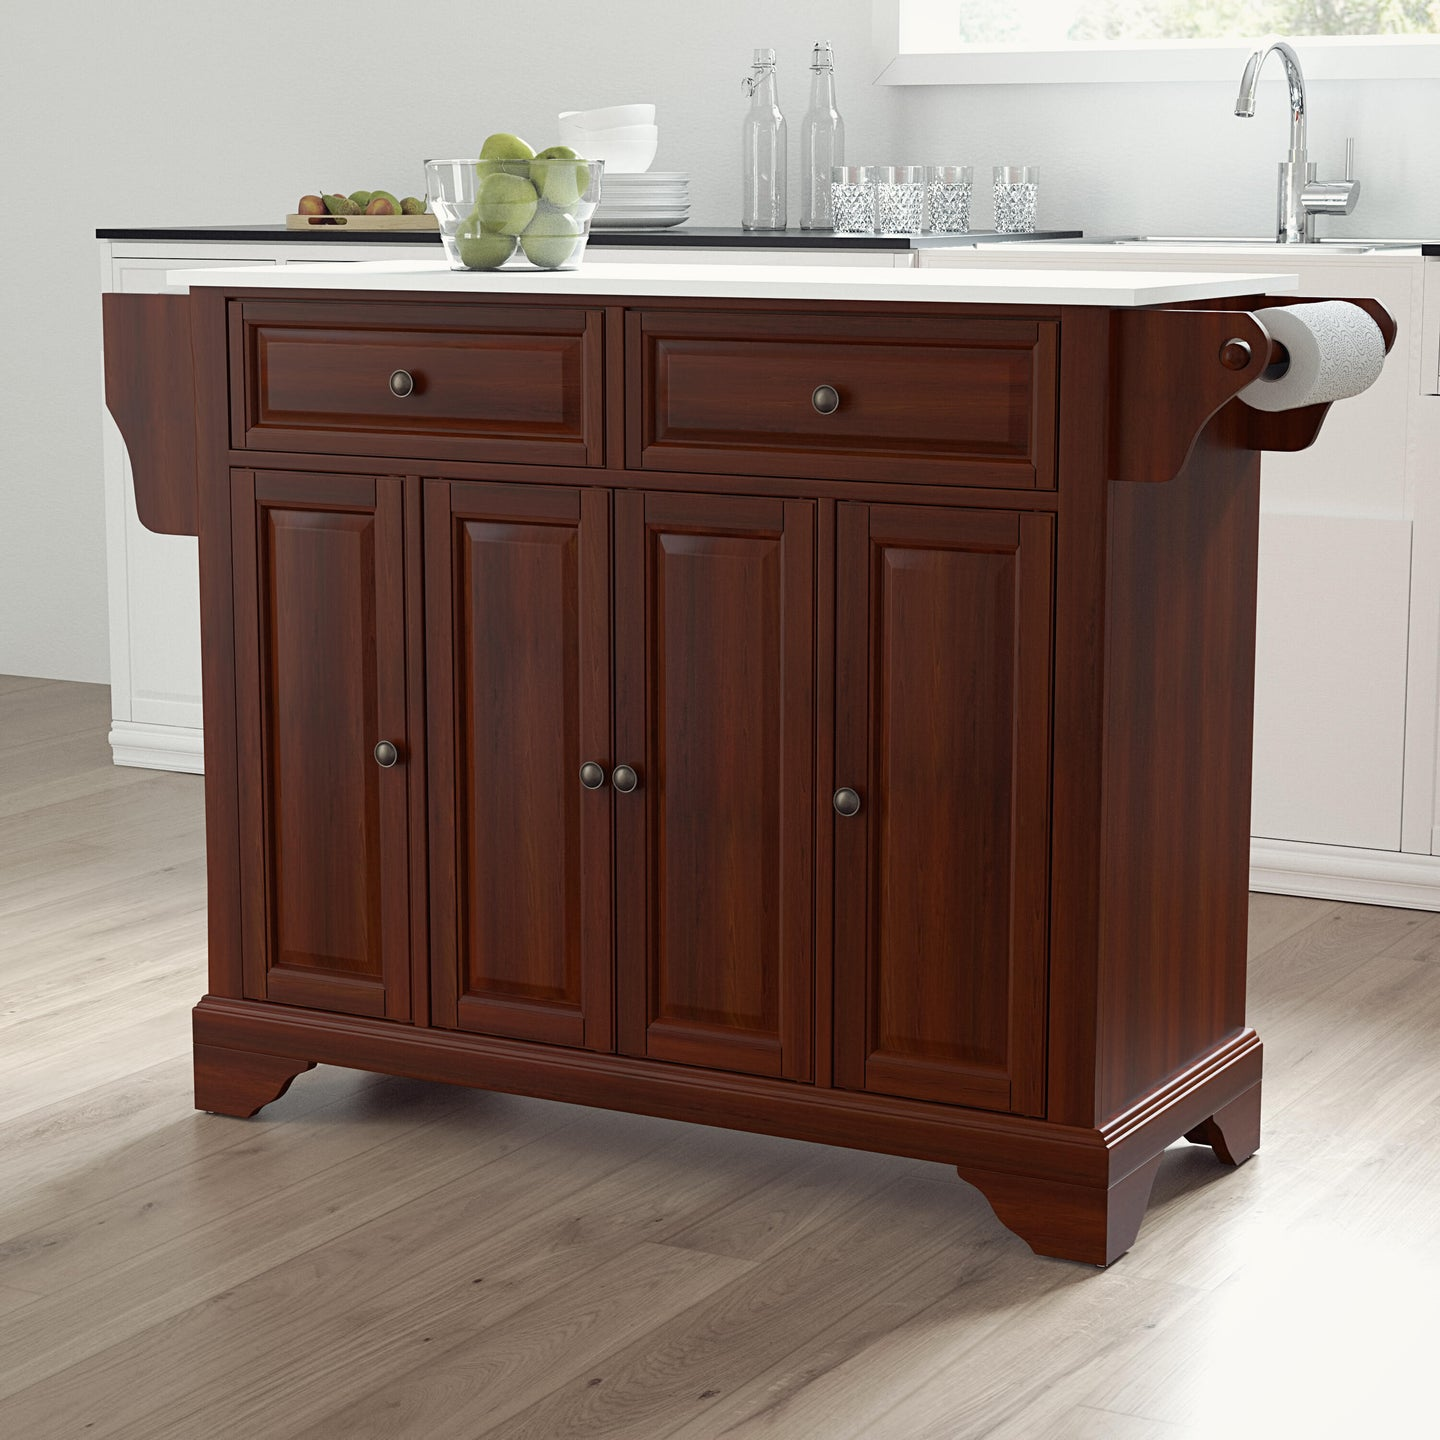 Lafayette Mahogany Full Size Kitchen Island/Cart with Granite Top - Kitchen Furniture Company